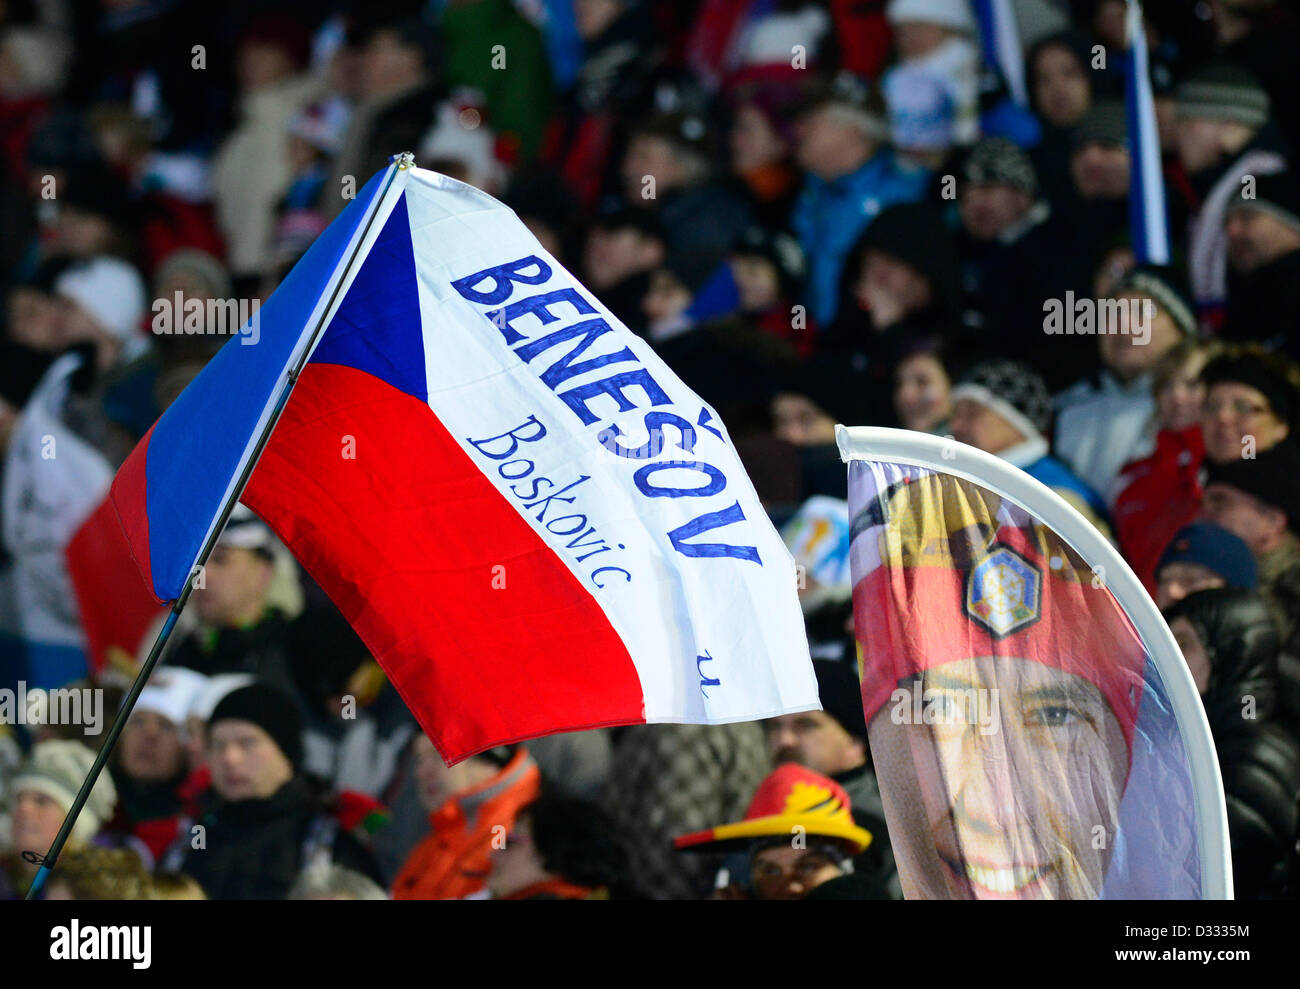 Fans react during the 2x6km + 2x7.5km mixed relay at the Biathlon World Championship in Nove Mesto na Morave, Czech - Stock Image